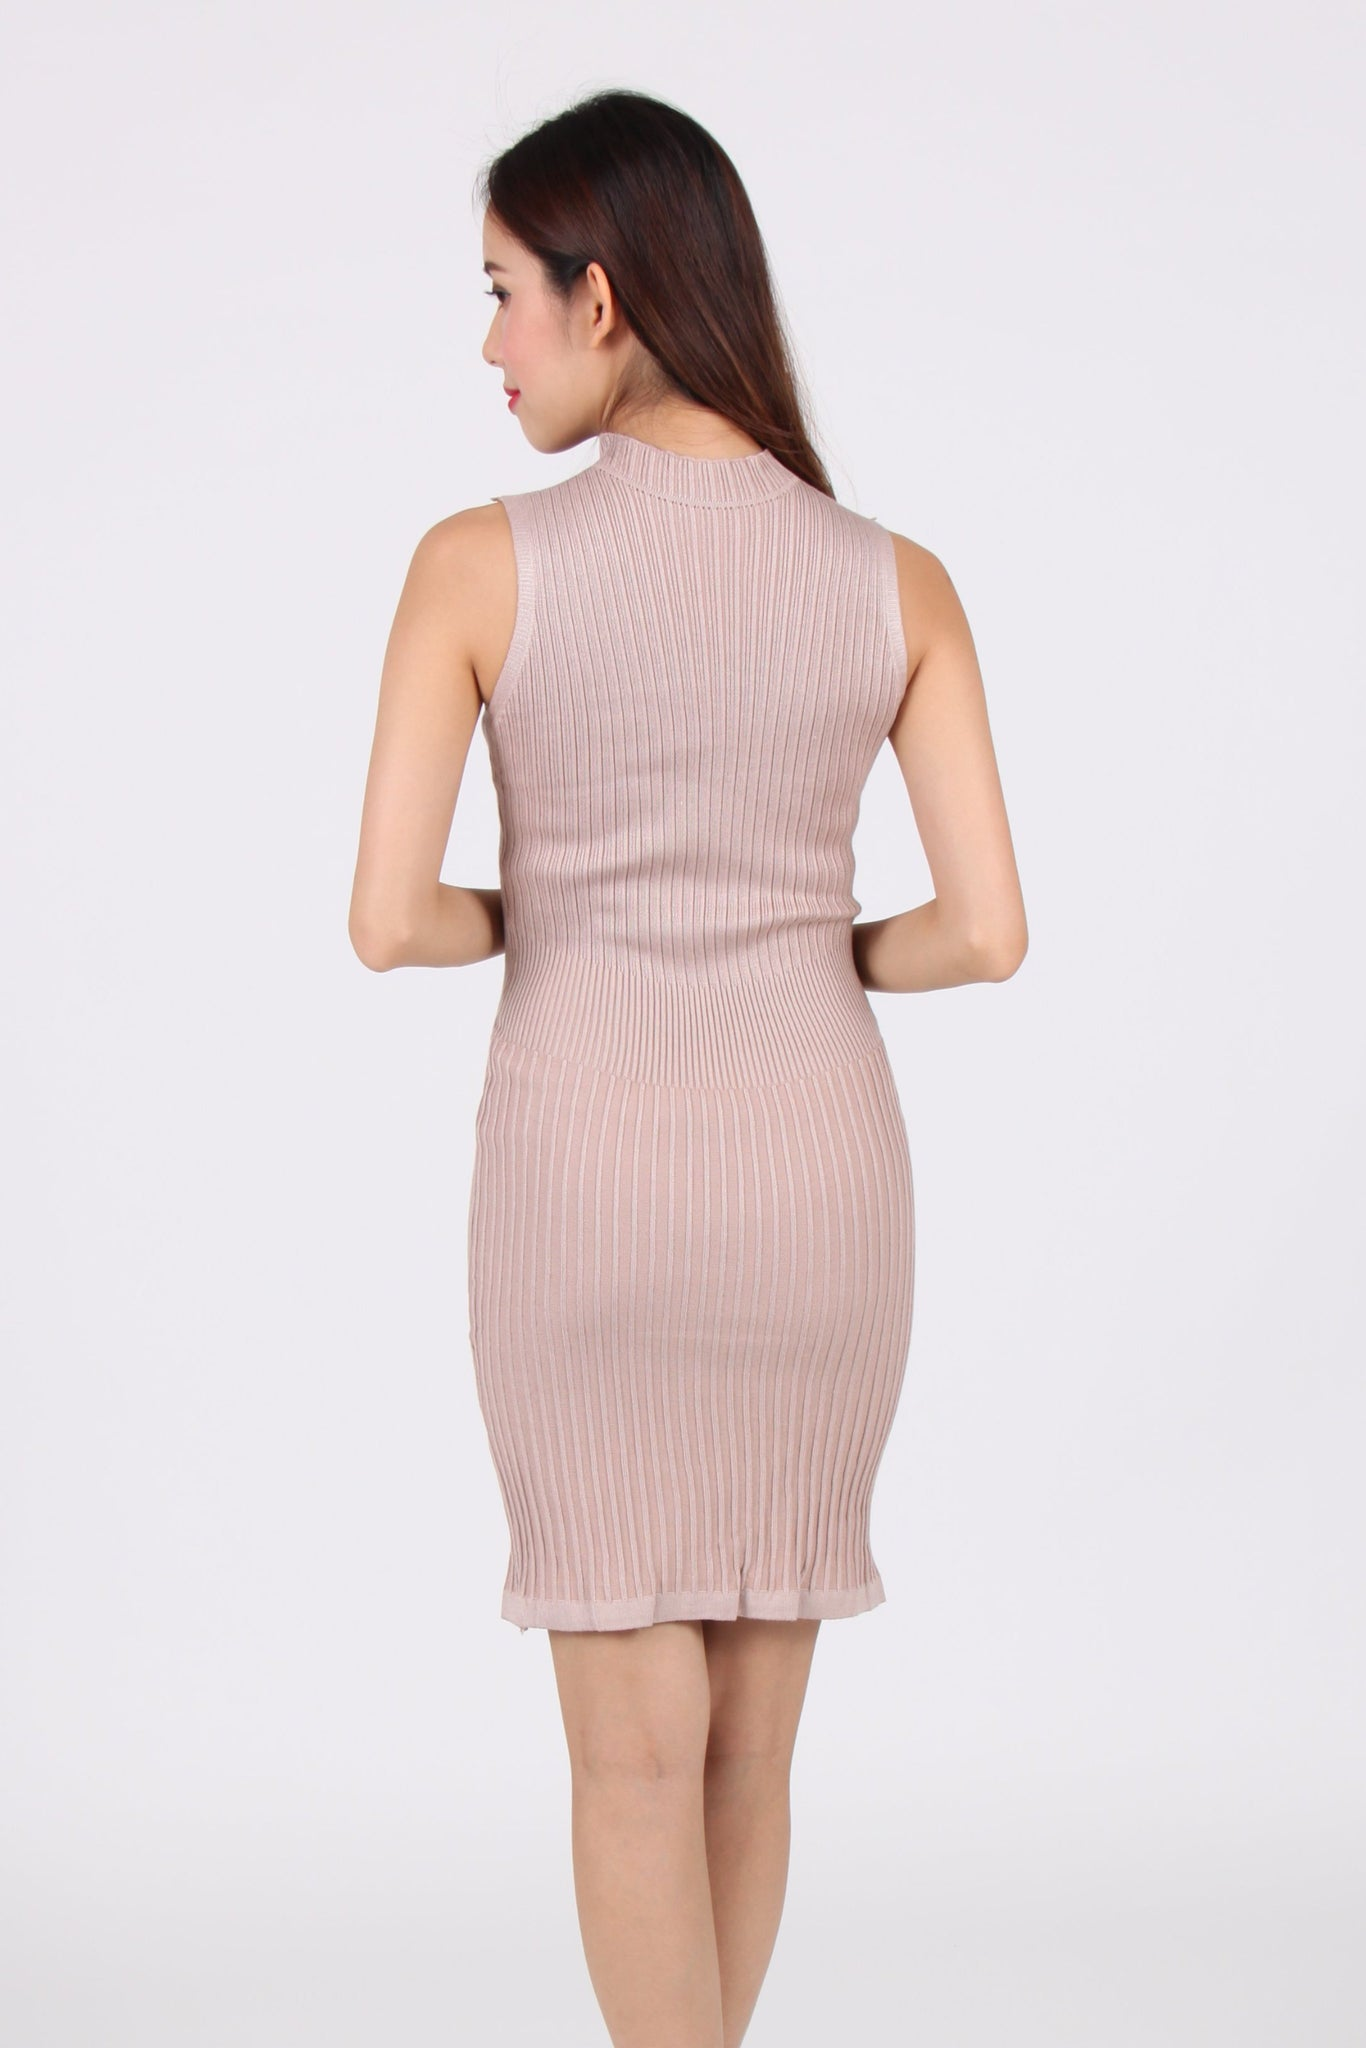 Sleeveless Vertical Bar Bodycon Dress in Beige